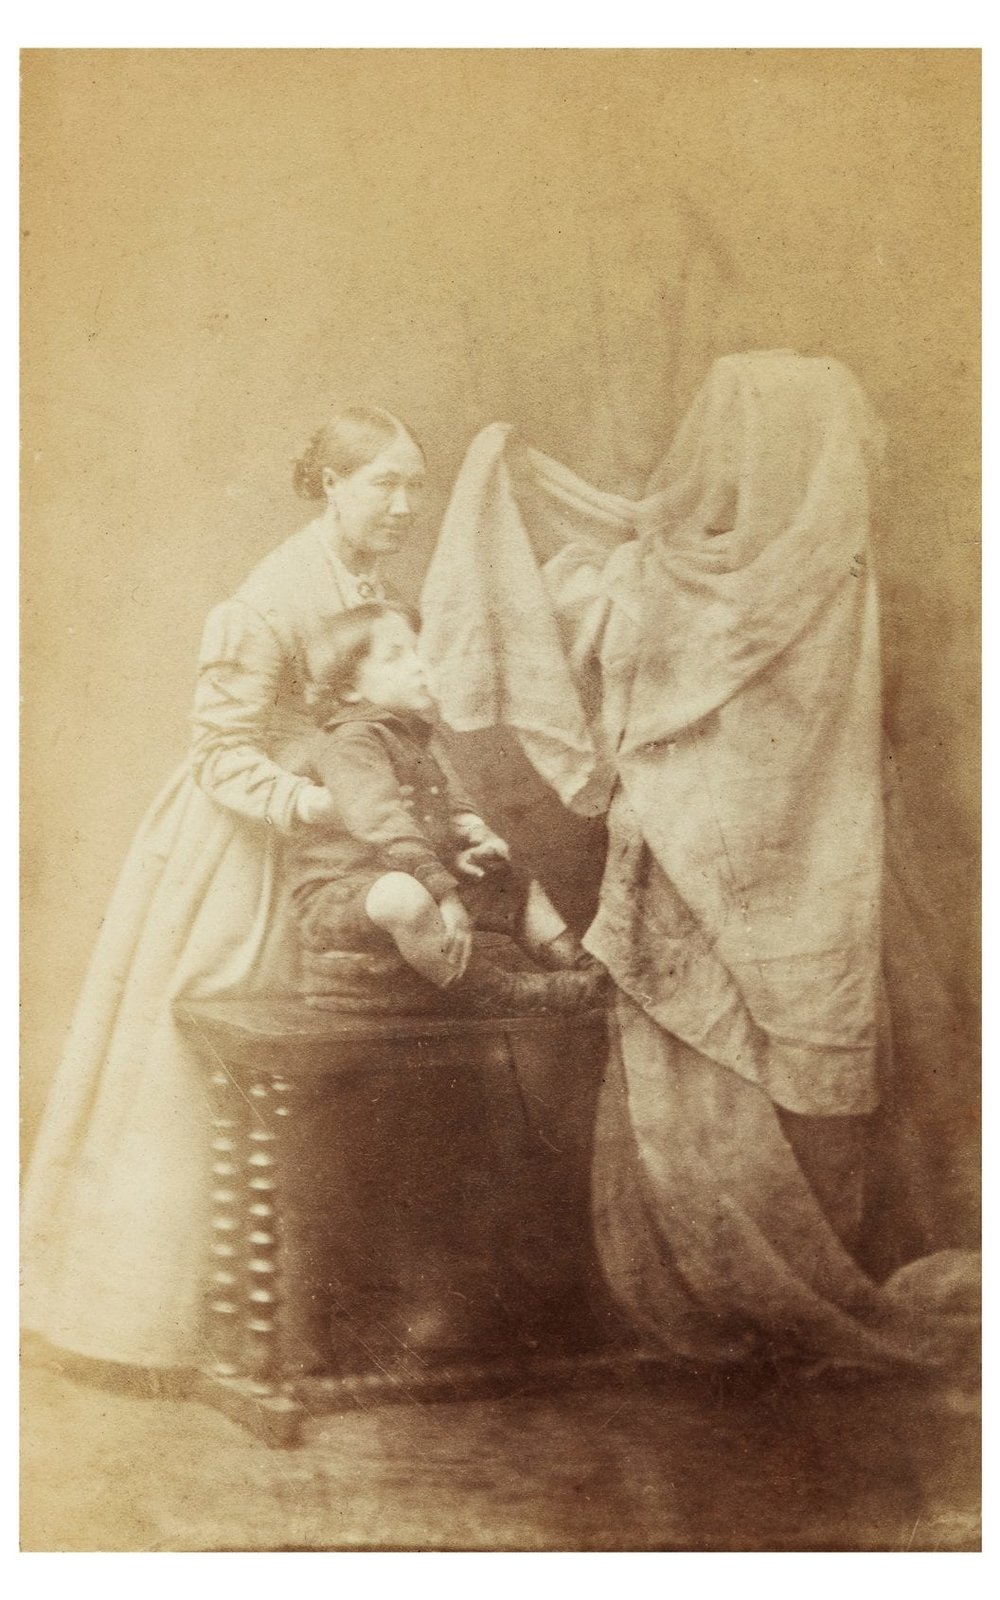 Spirit photograph by Frederick Hudson (c.1872) depicting Georgiana Houghton, child and spirit. Credit: College of Psychic Studies. Originally found here.